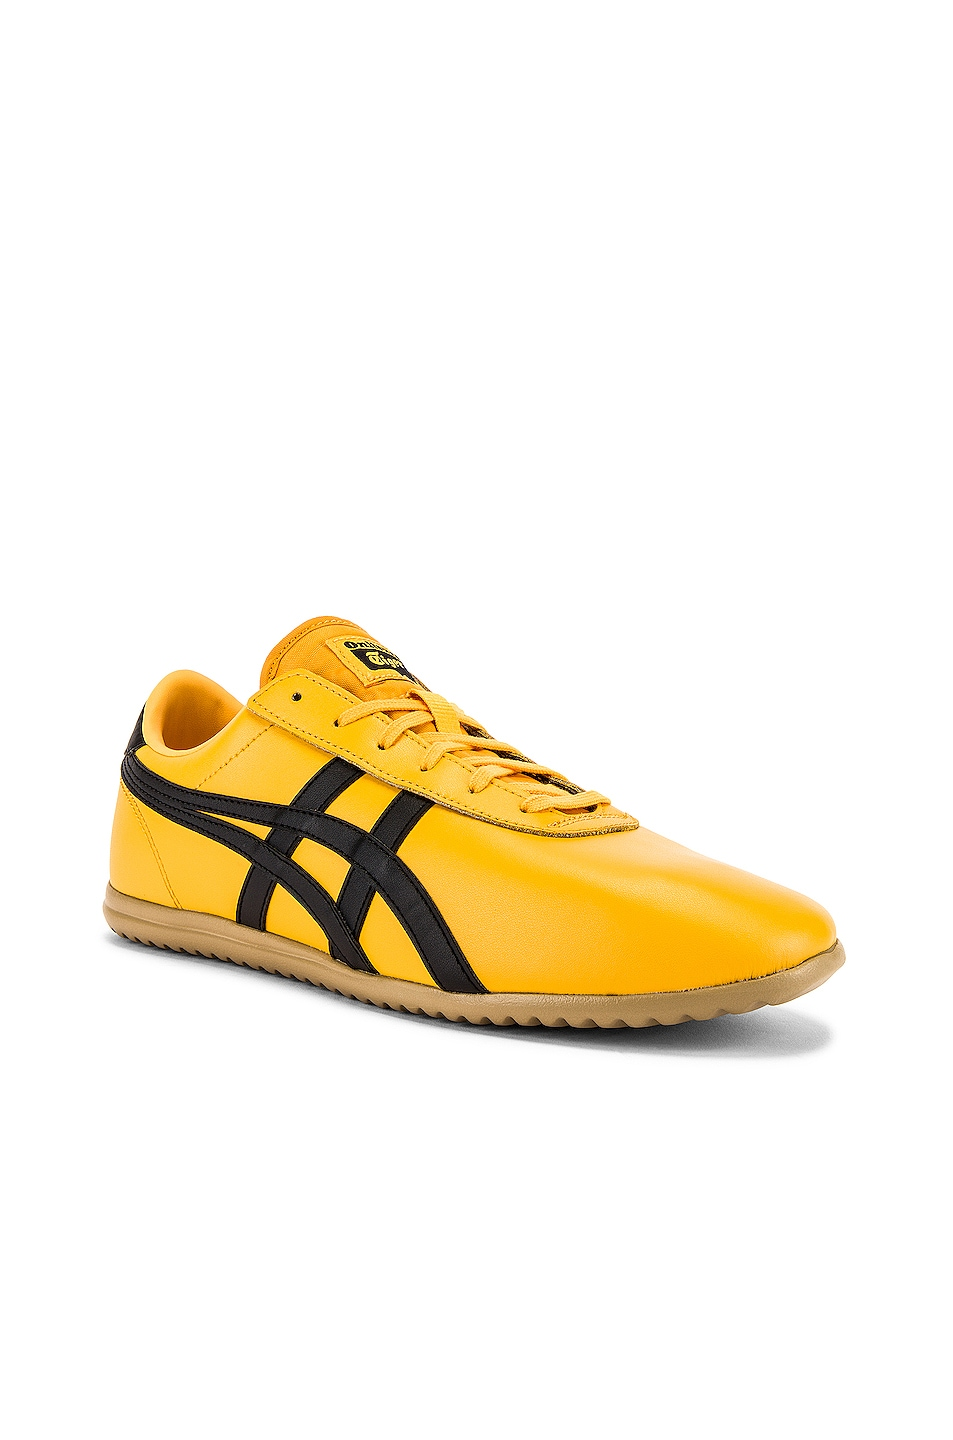 Image 1 of Onitsuka Tiger Tai-Chi-Reb in Tiger Yellow & Black